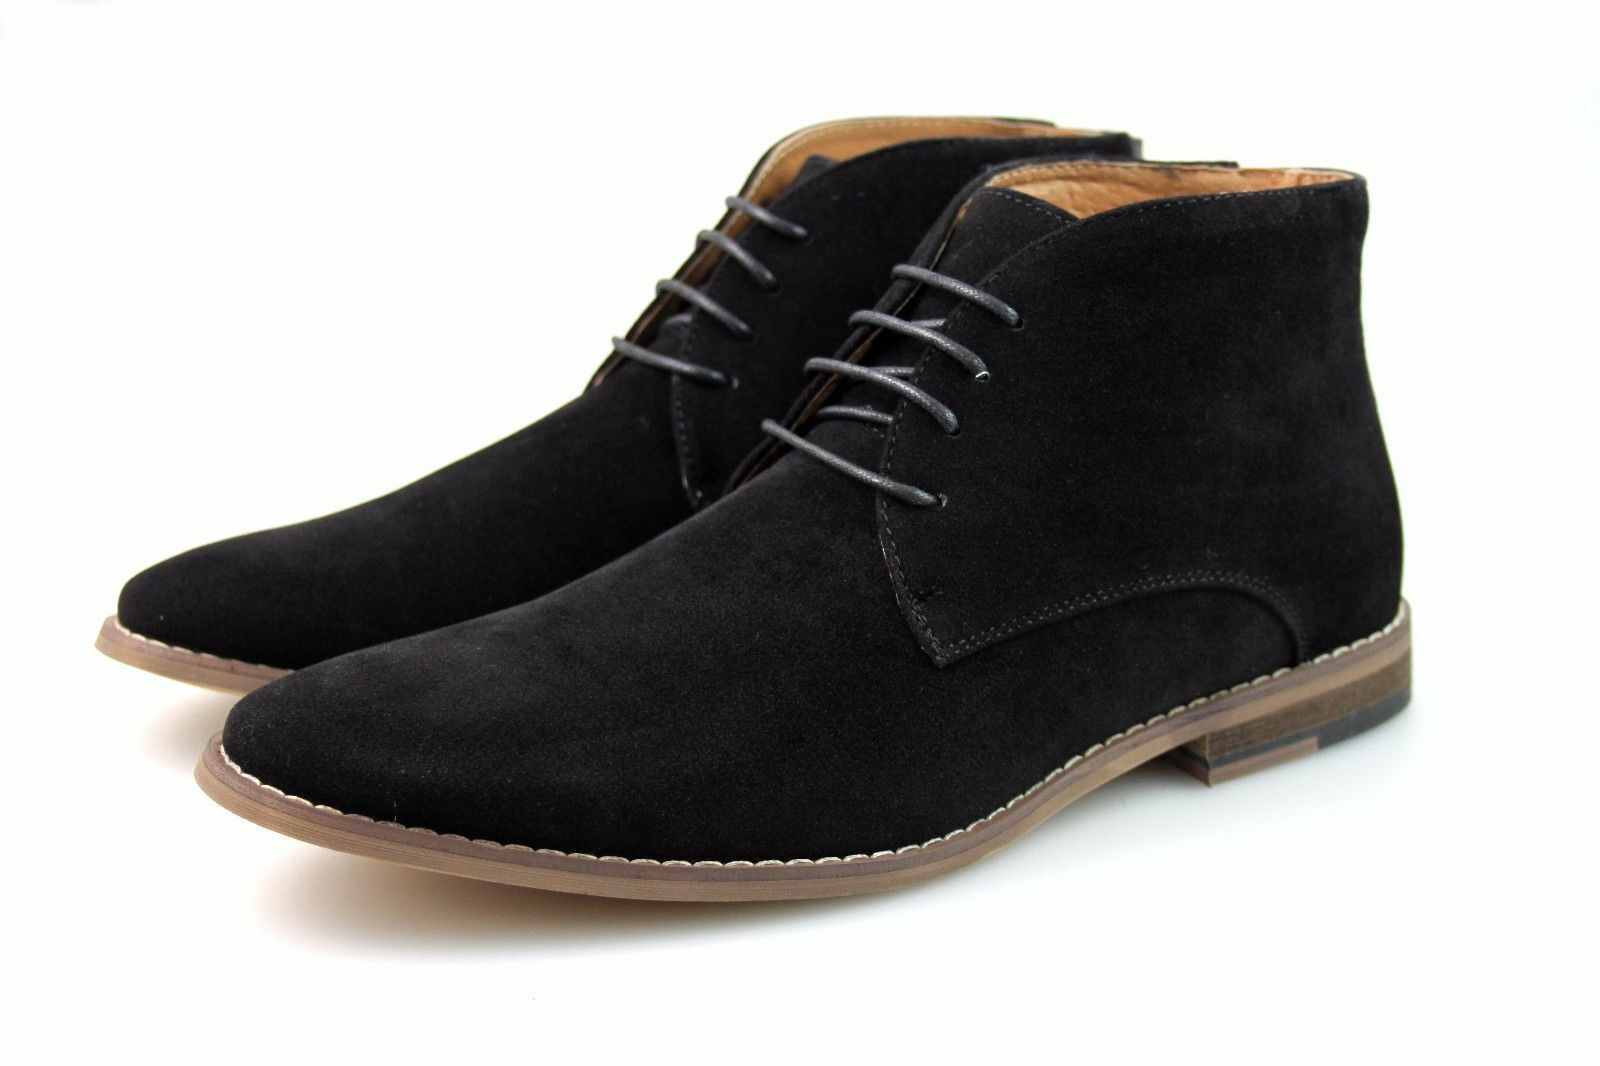 Mens Black Chukka Desert Boots Faux Suede Chelsea Winter Lace Up All Sizes